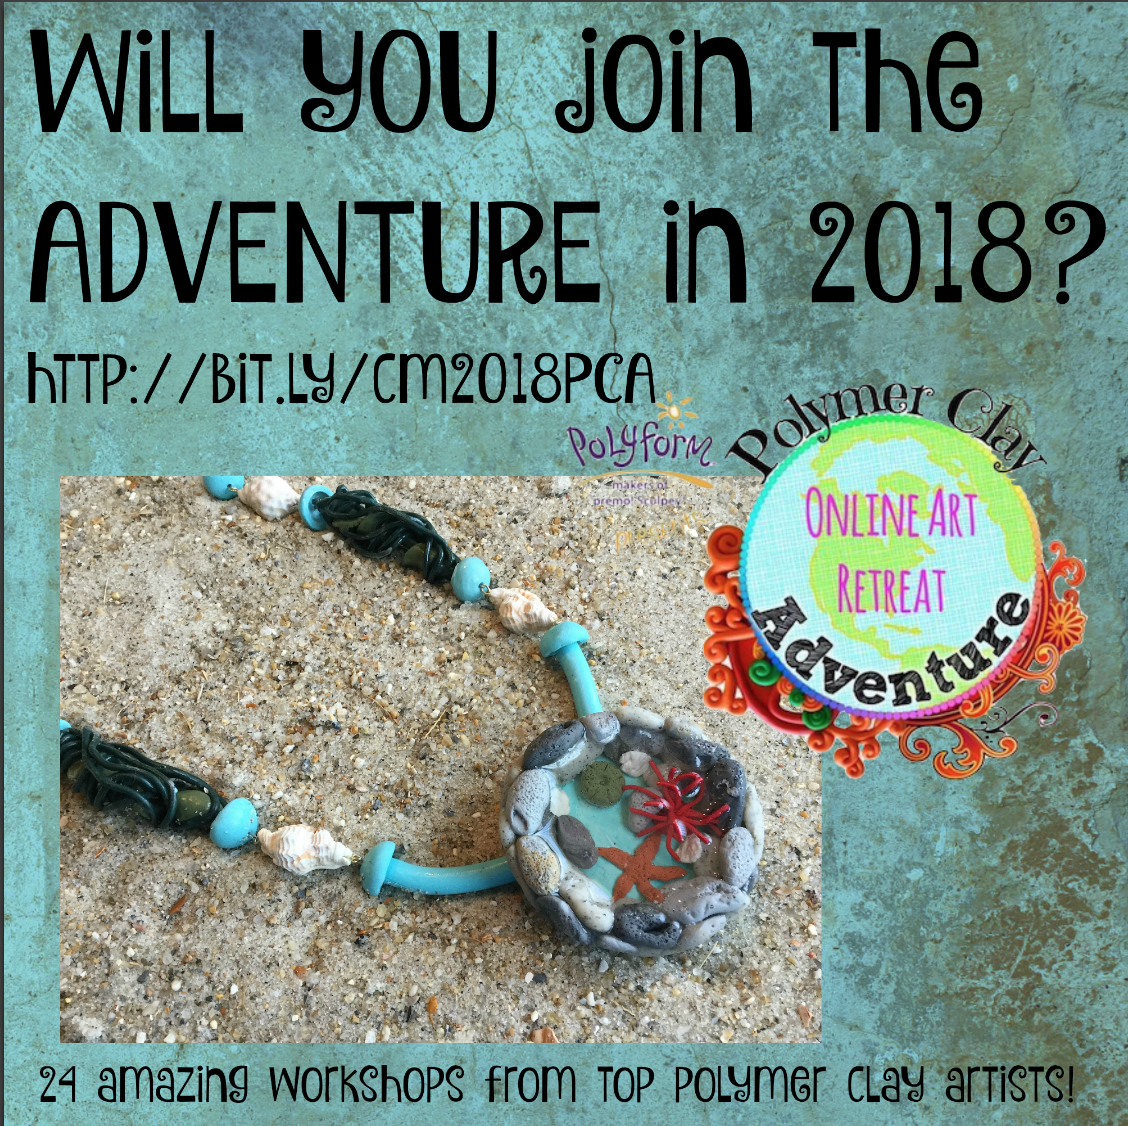 Join the 2018 Adventure!